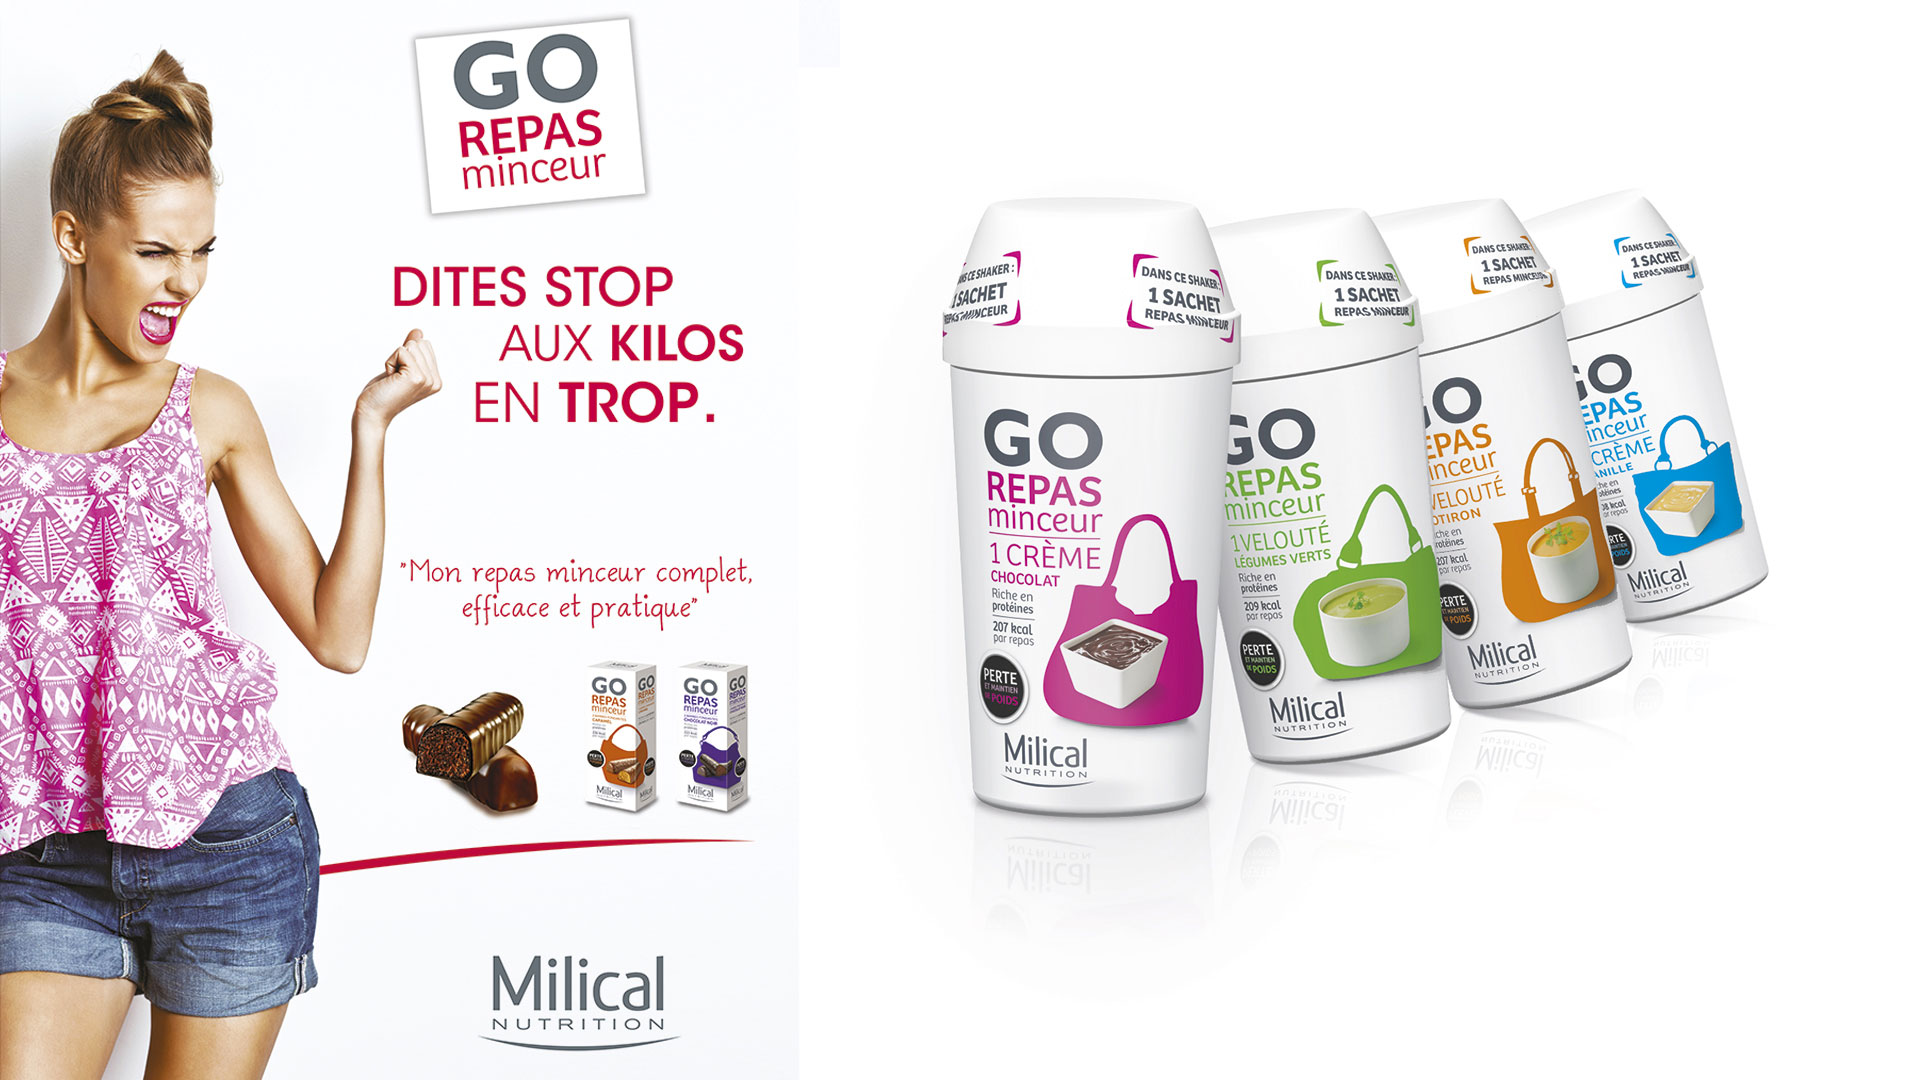 milical go repas minceur cartoon.design